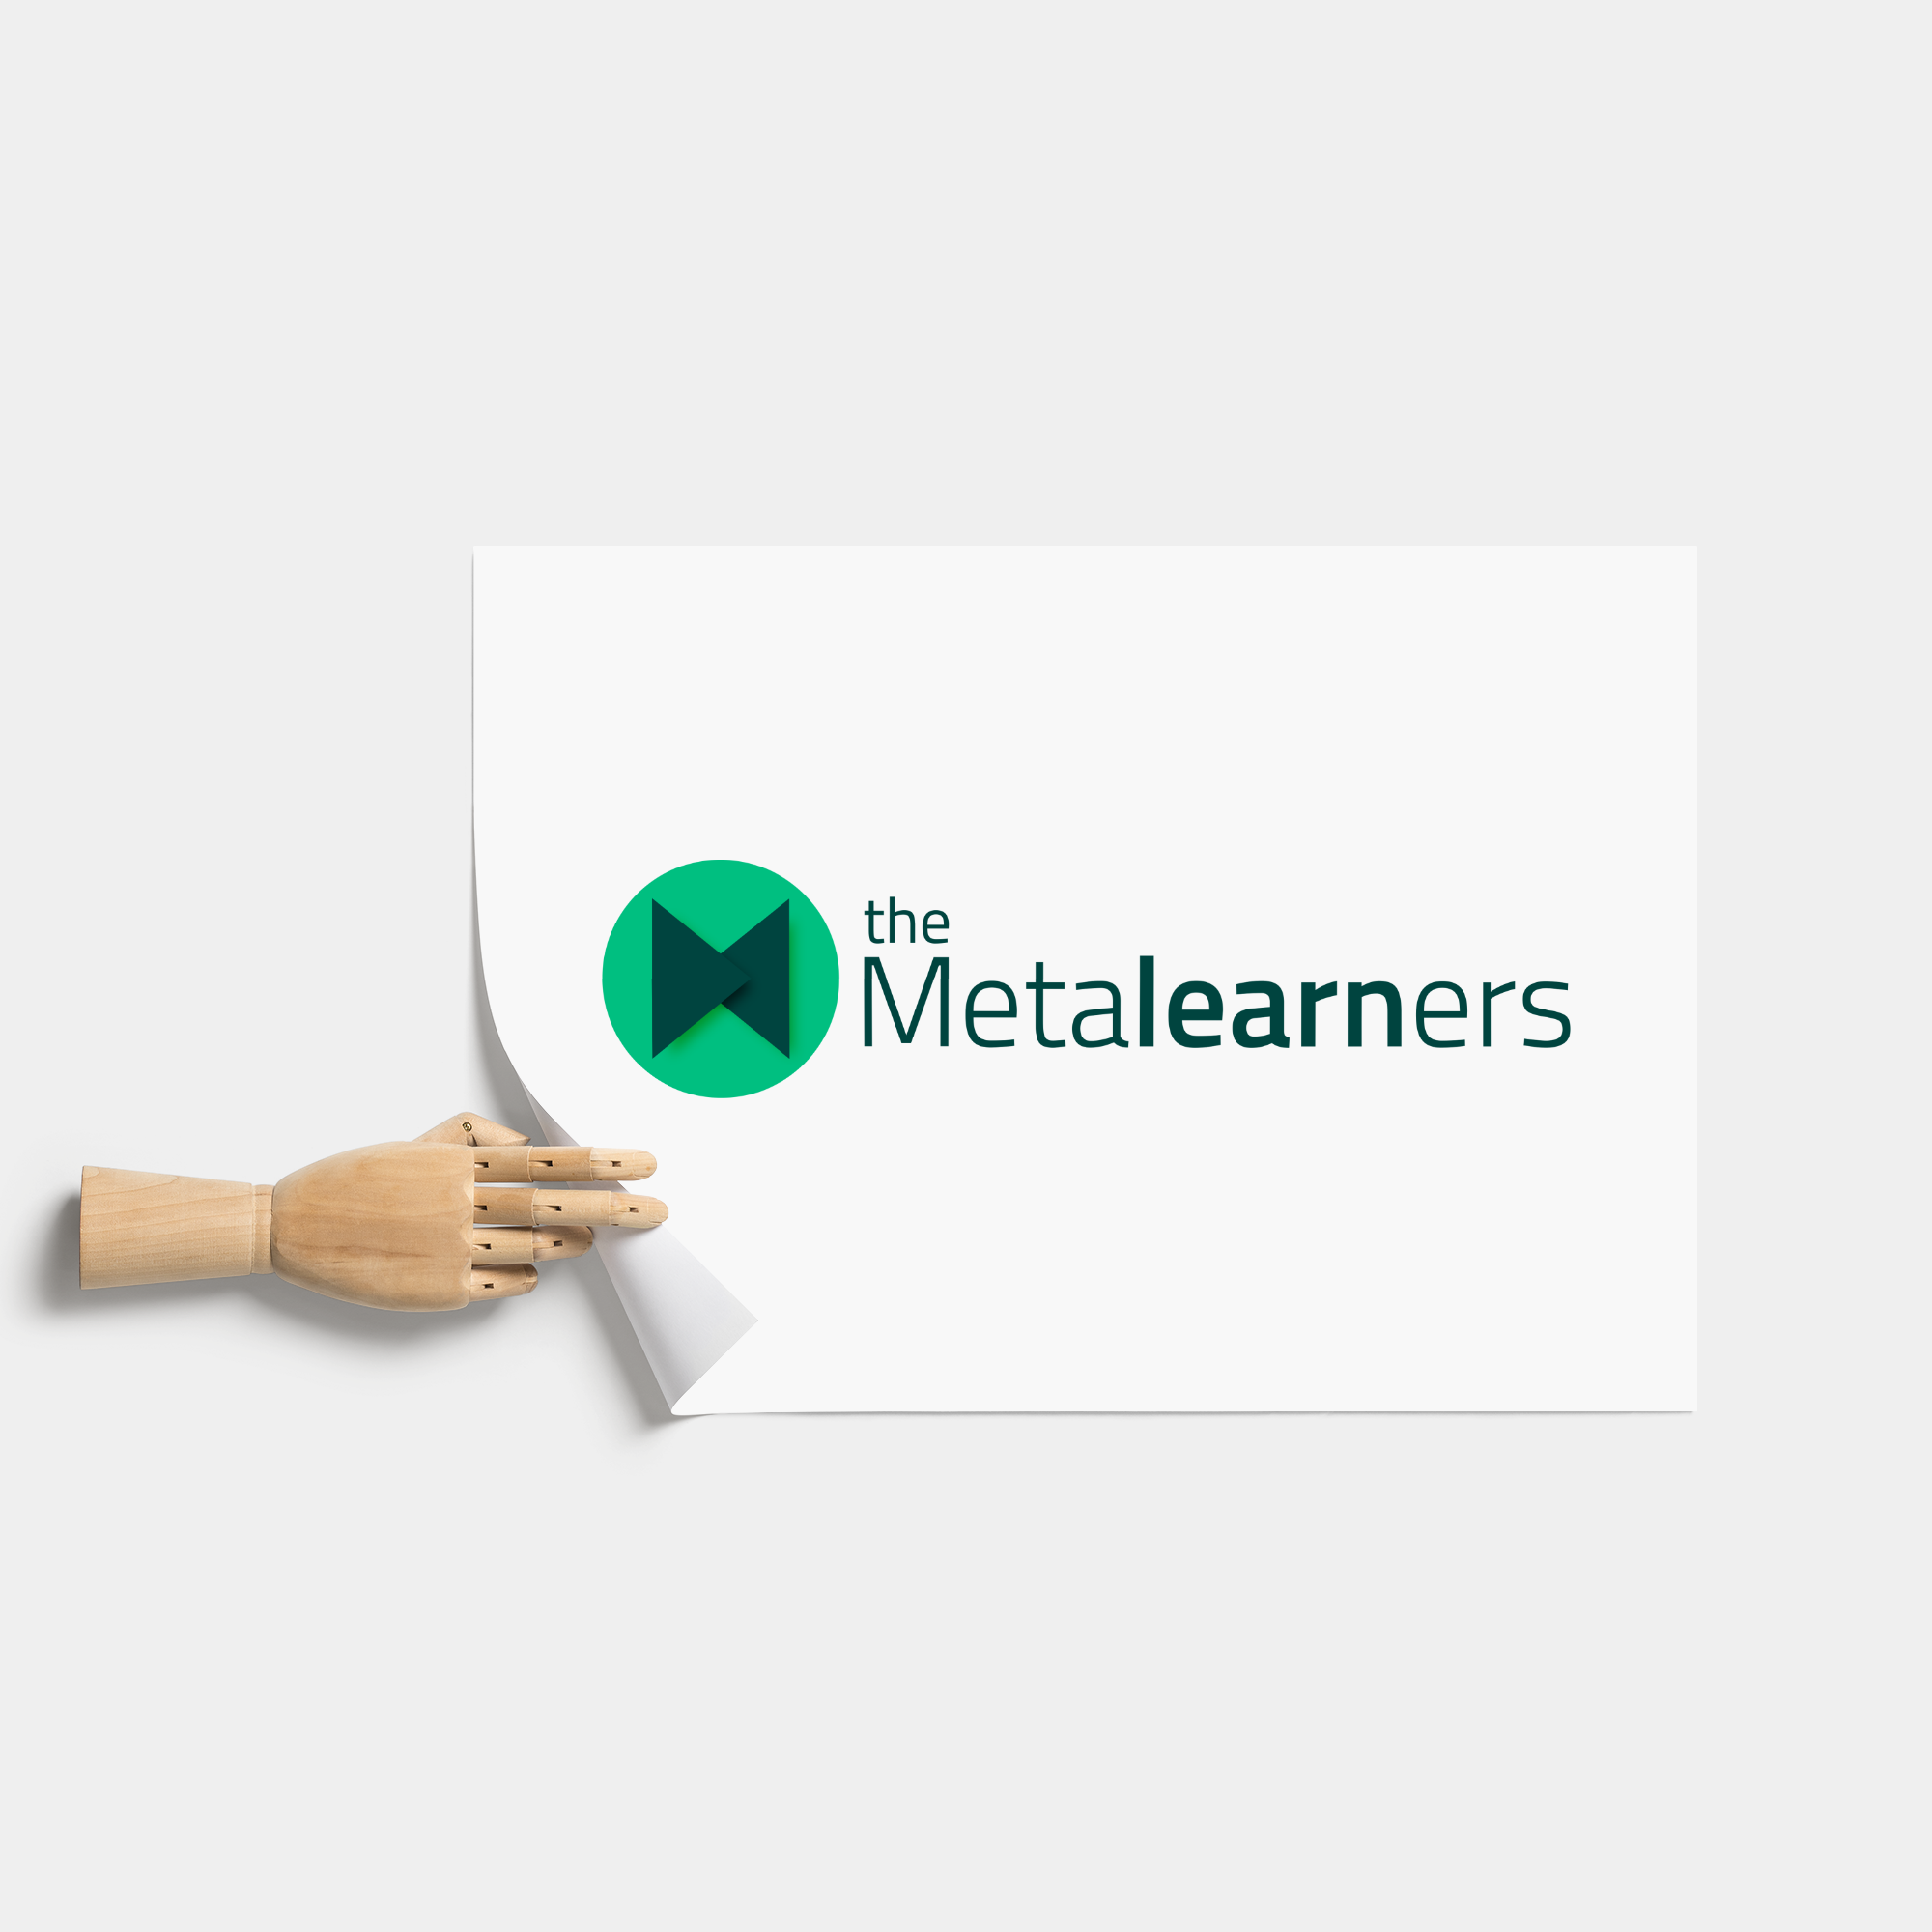 The Metalearners logo on an A4 sheet and a wooden hand